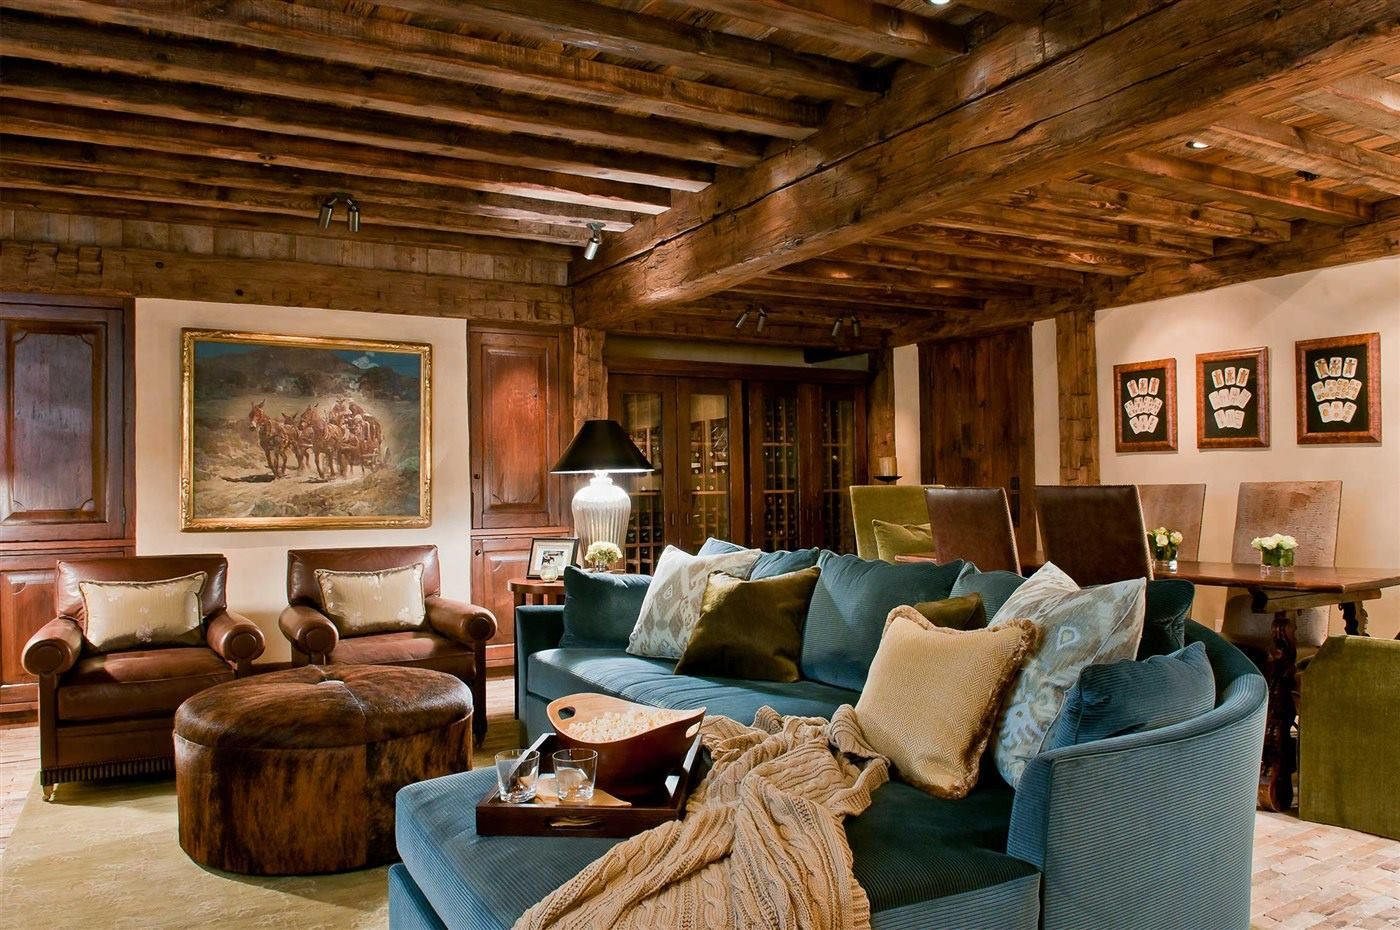 wood beam and wall, living room interior design